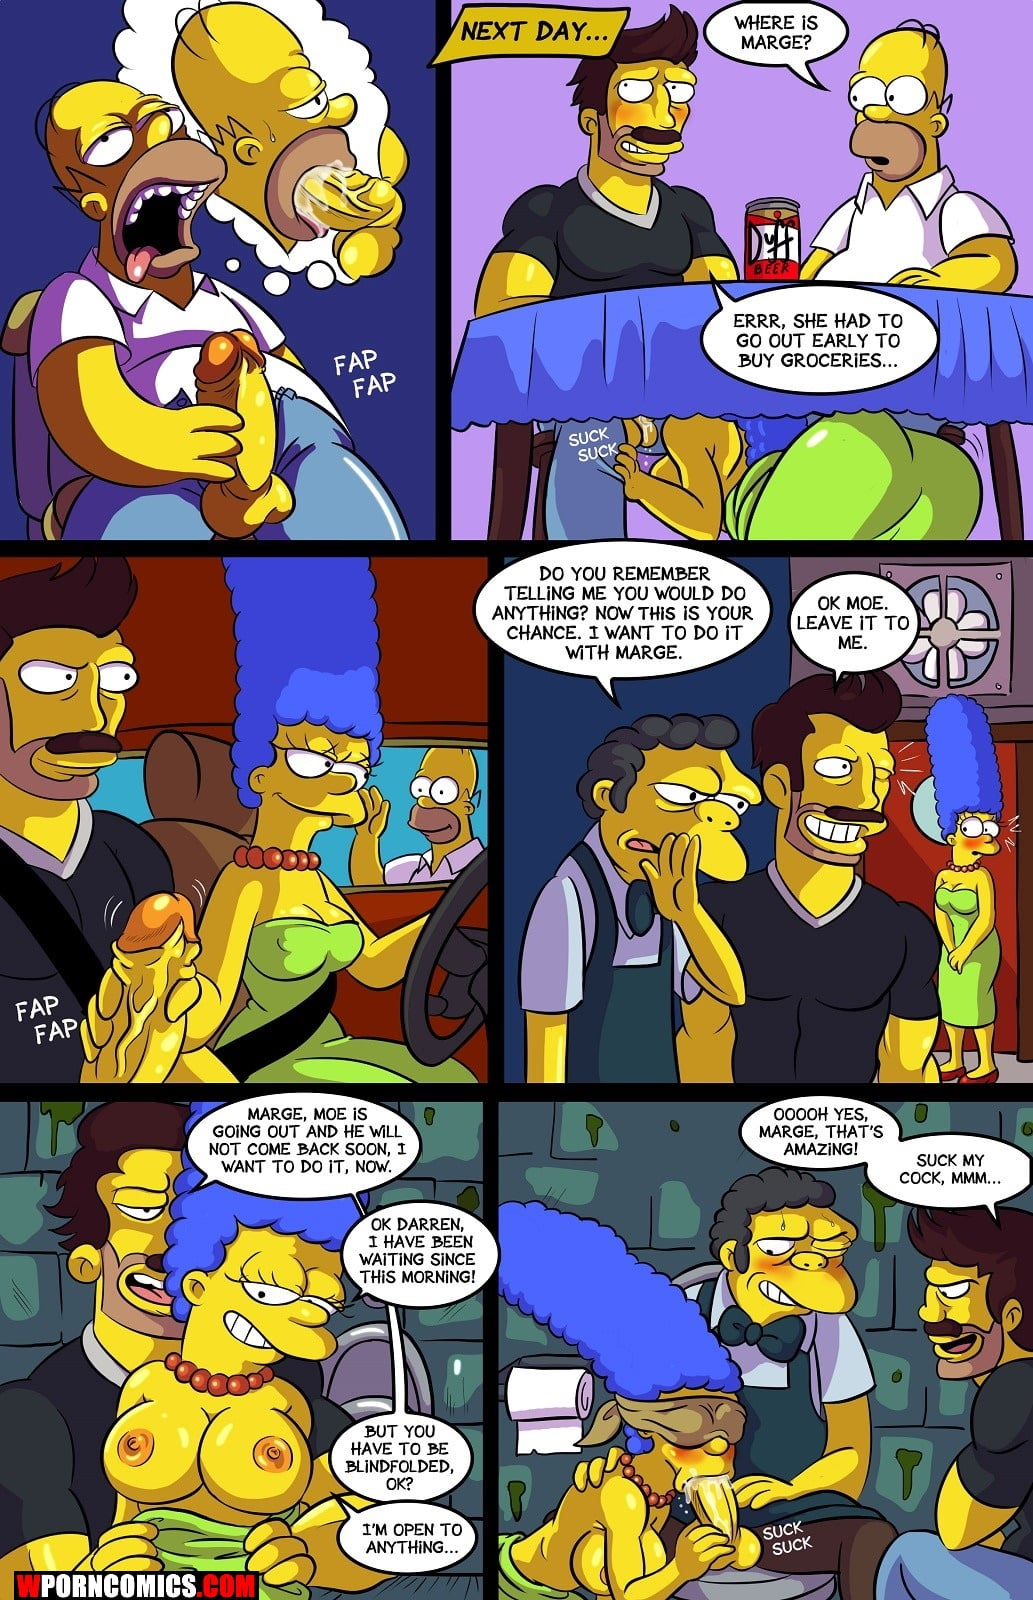 porn-comic-simpsons-darrens-adventure-part-1-2020-03-21/porn-comic-simpsons-darrens-adventure-part-1-2020-03-21-5308.jpg